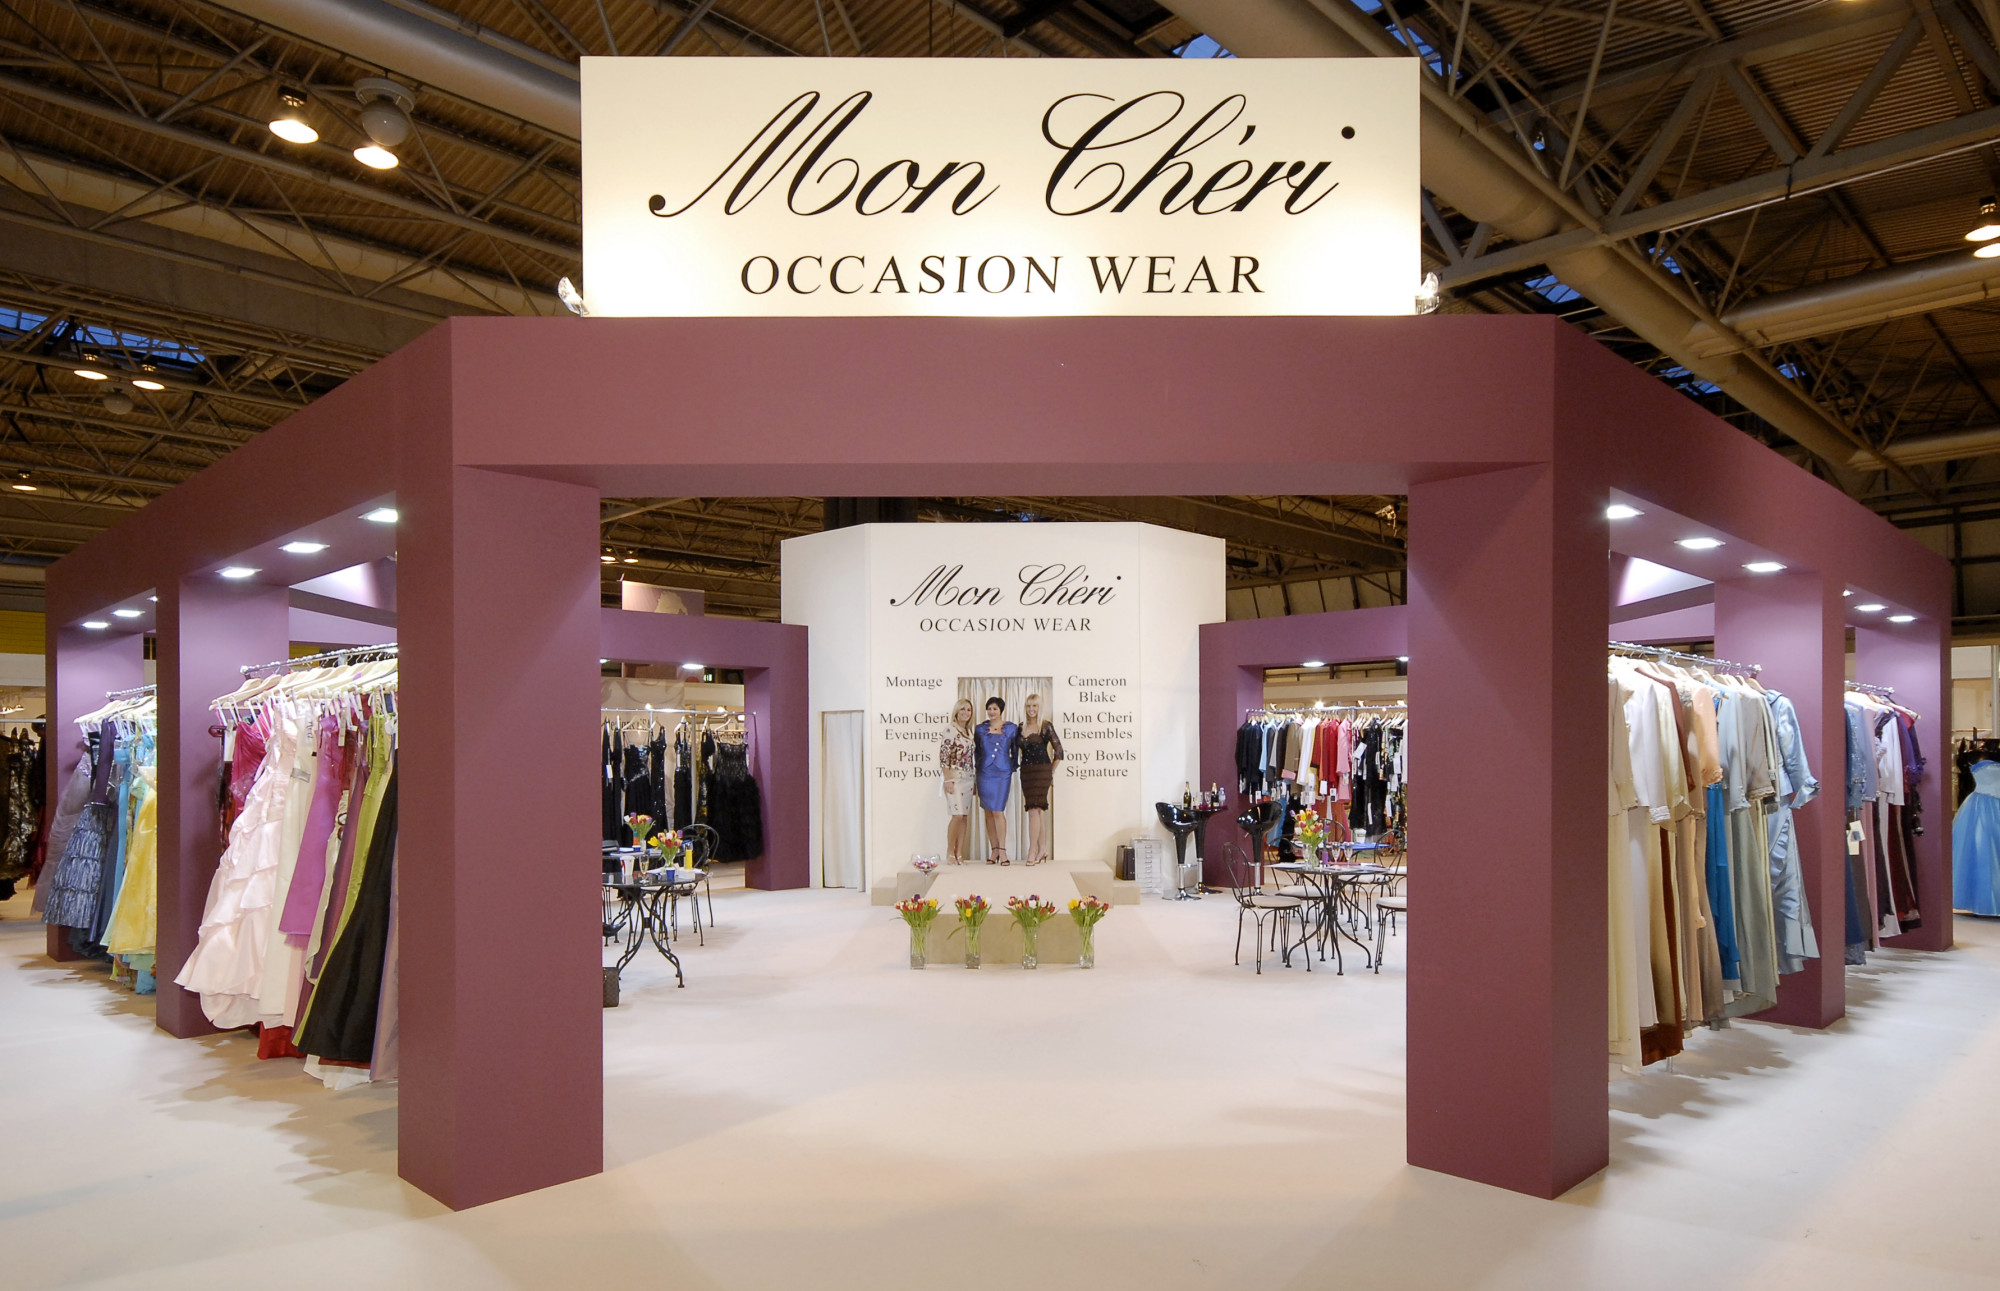 Exhibition Stand Clothes : Bespoke exhibition stands ⋆ kj exhibition & display